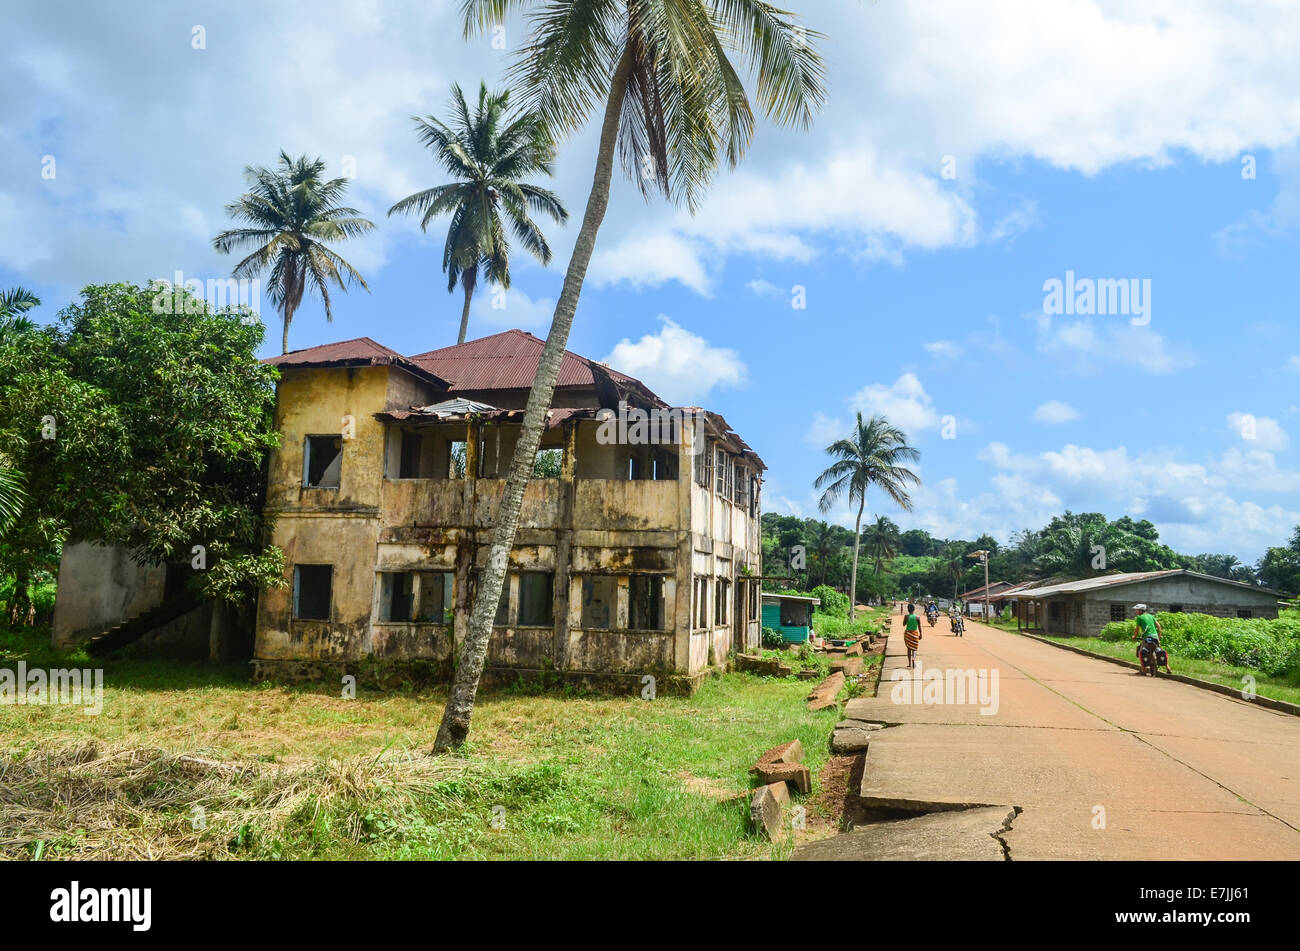 Ruins (from the civil war) and palm trees in Robertsport, a coastal town in Liberia, Africa - Stock Image